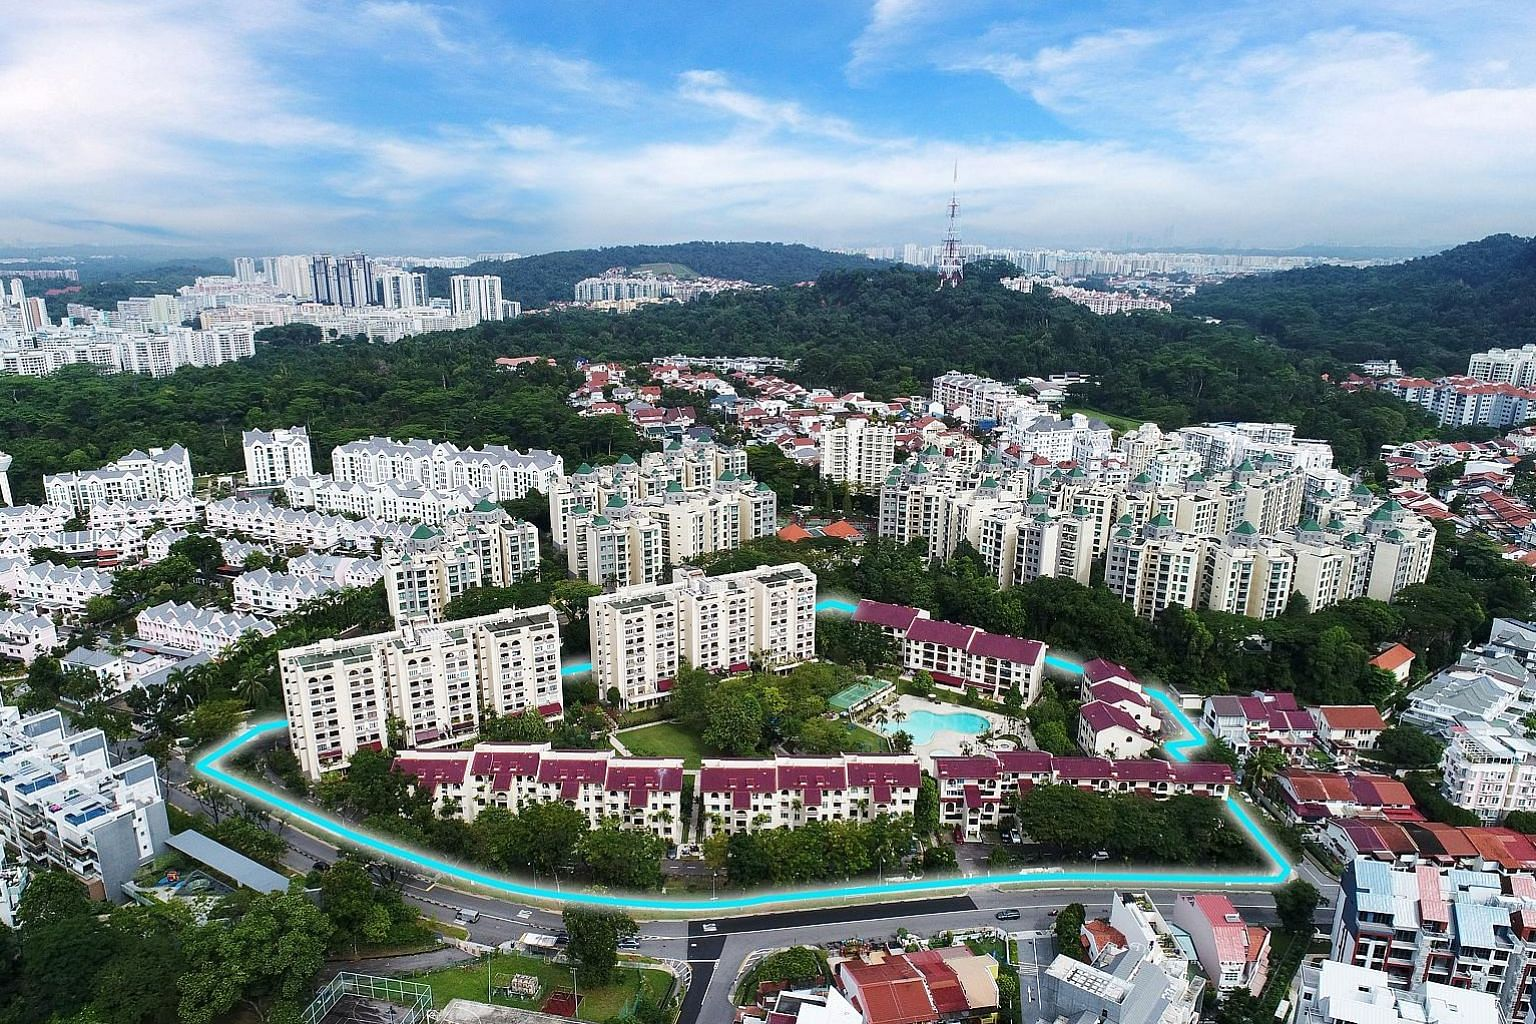 The court gave its reasons for dismissing the appeal of objectors to the collective sale of Goodluck Garden, a condominium in Toh Tuck Road, for $610 million to Qingjian Group.